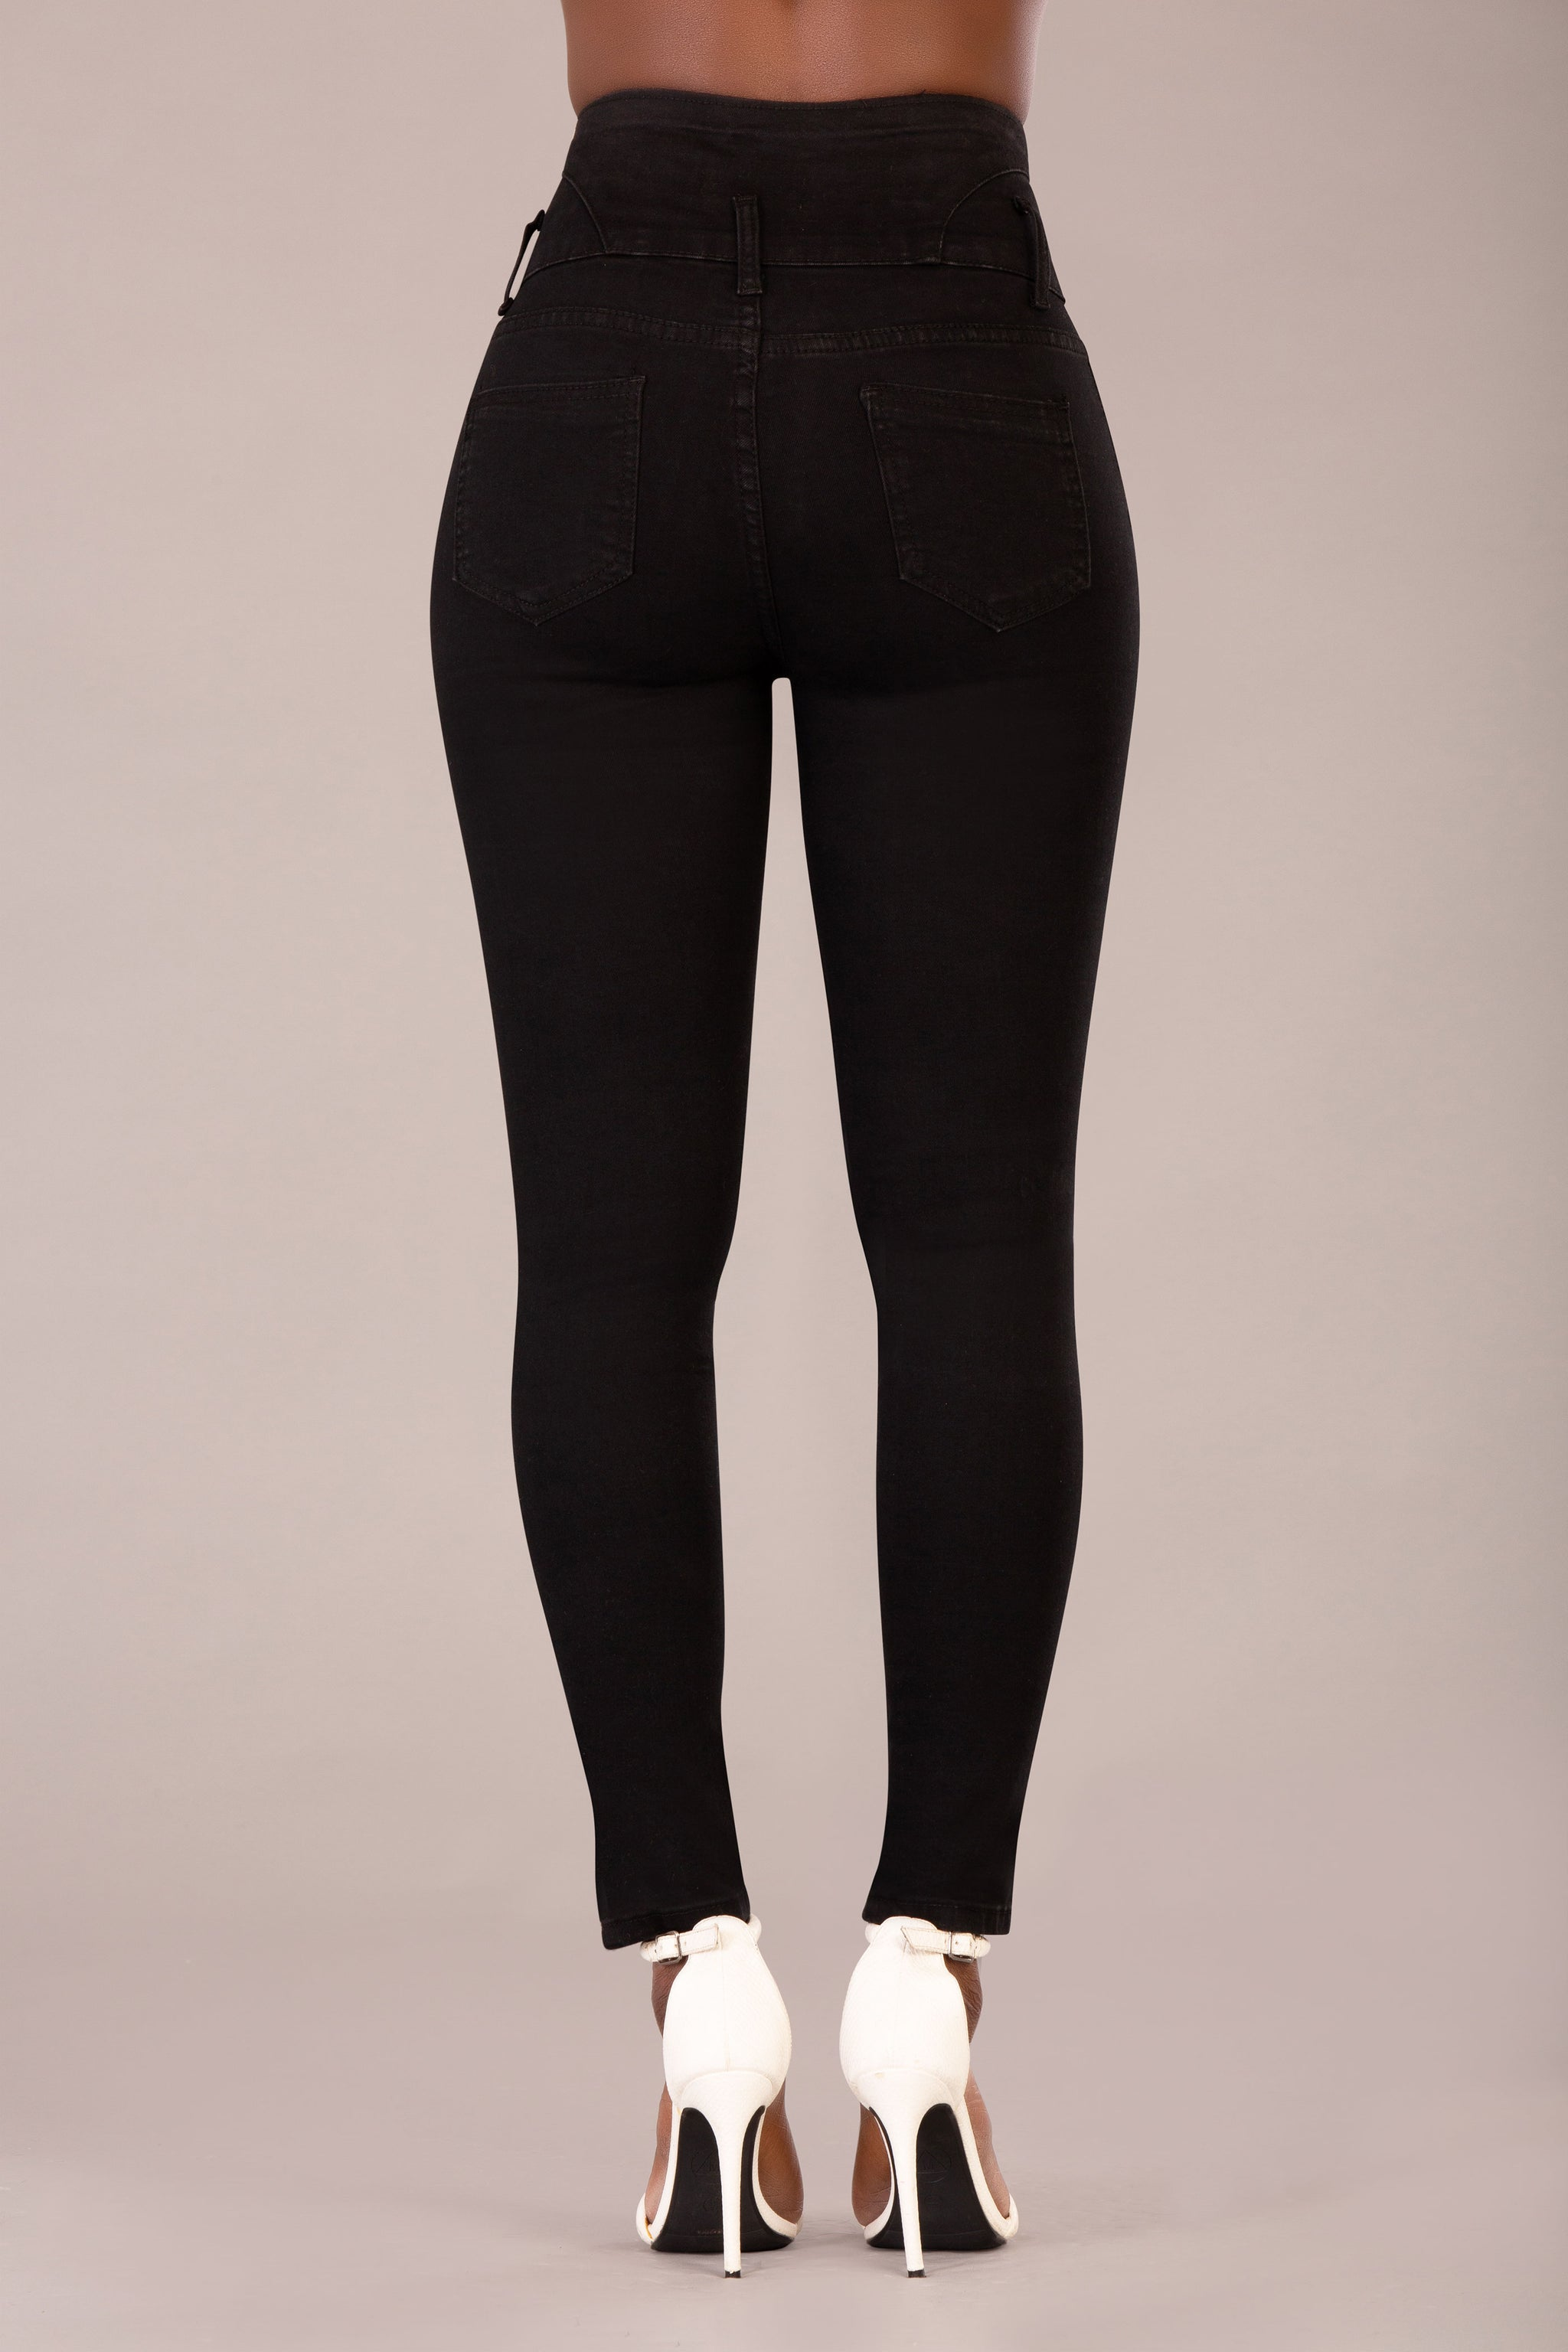 c1503758ca5 New Women Skinny Jeans by Tagged